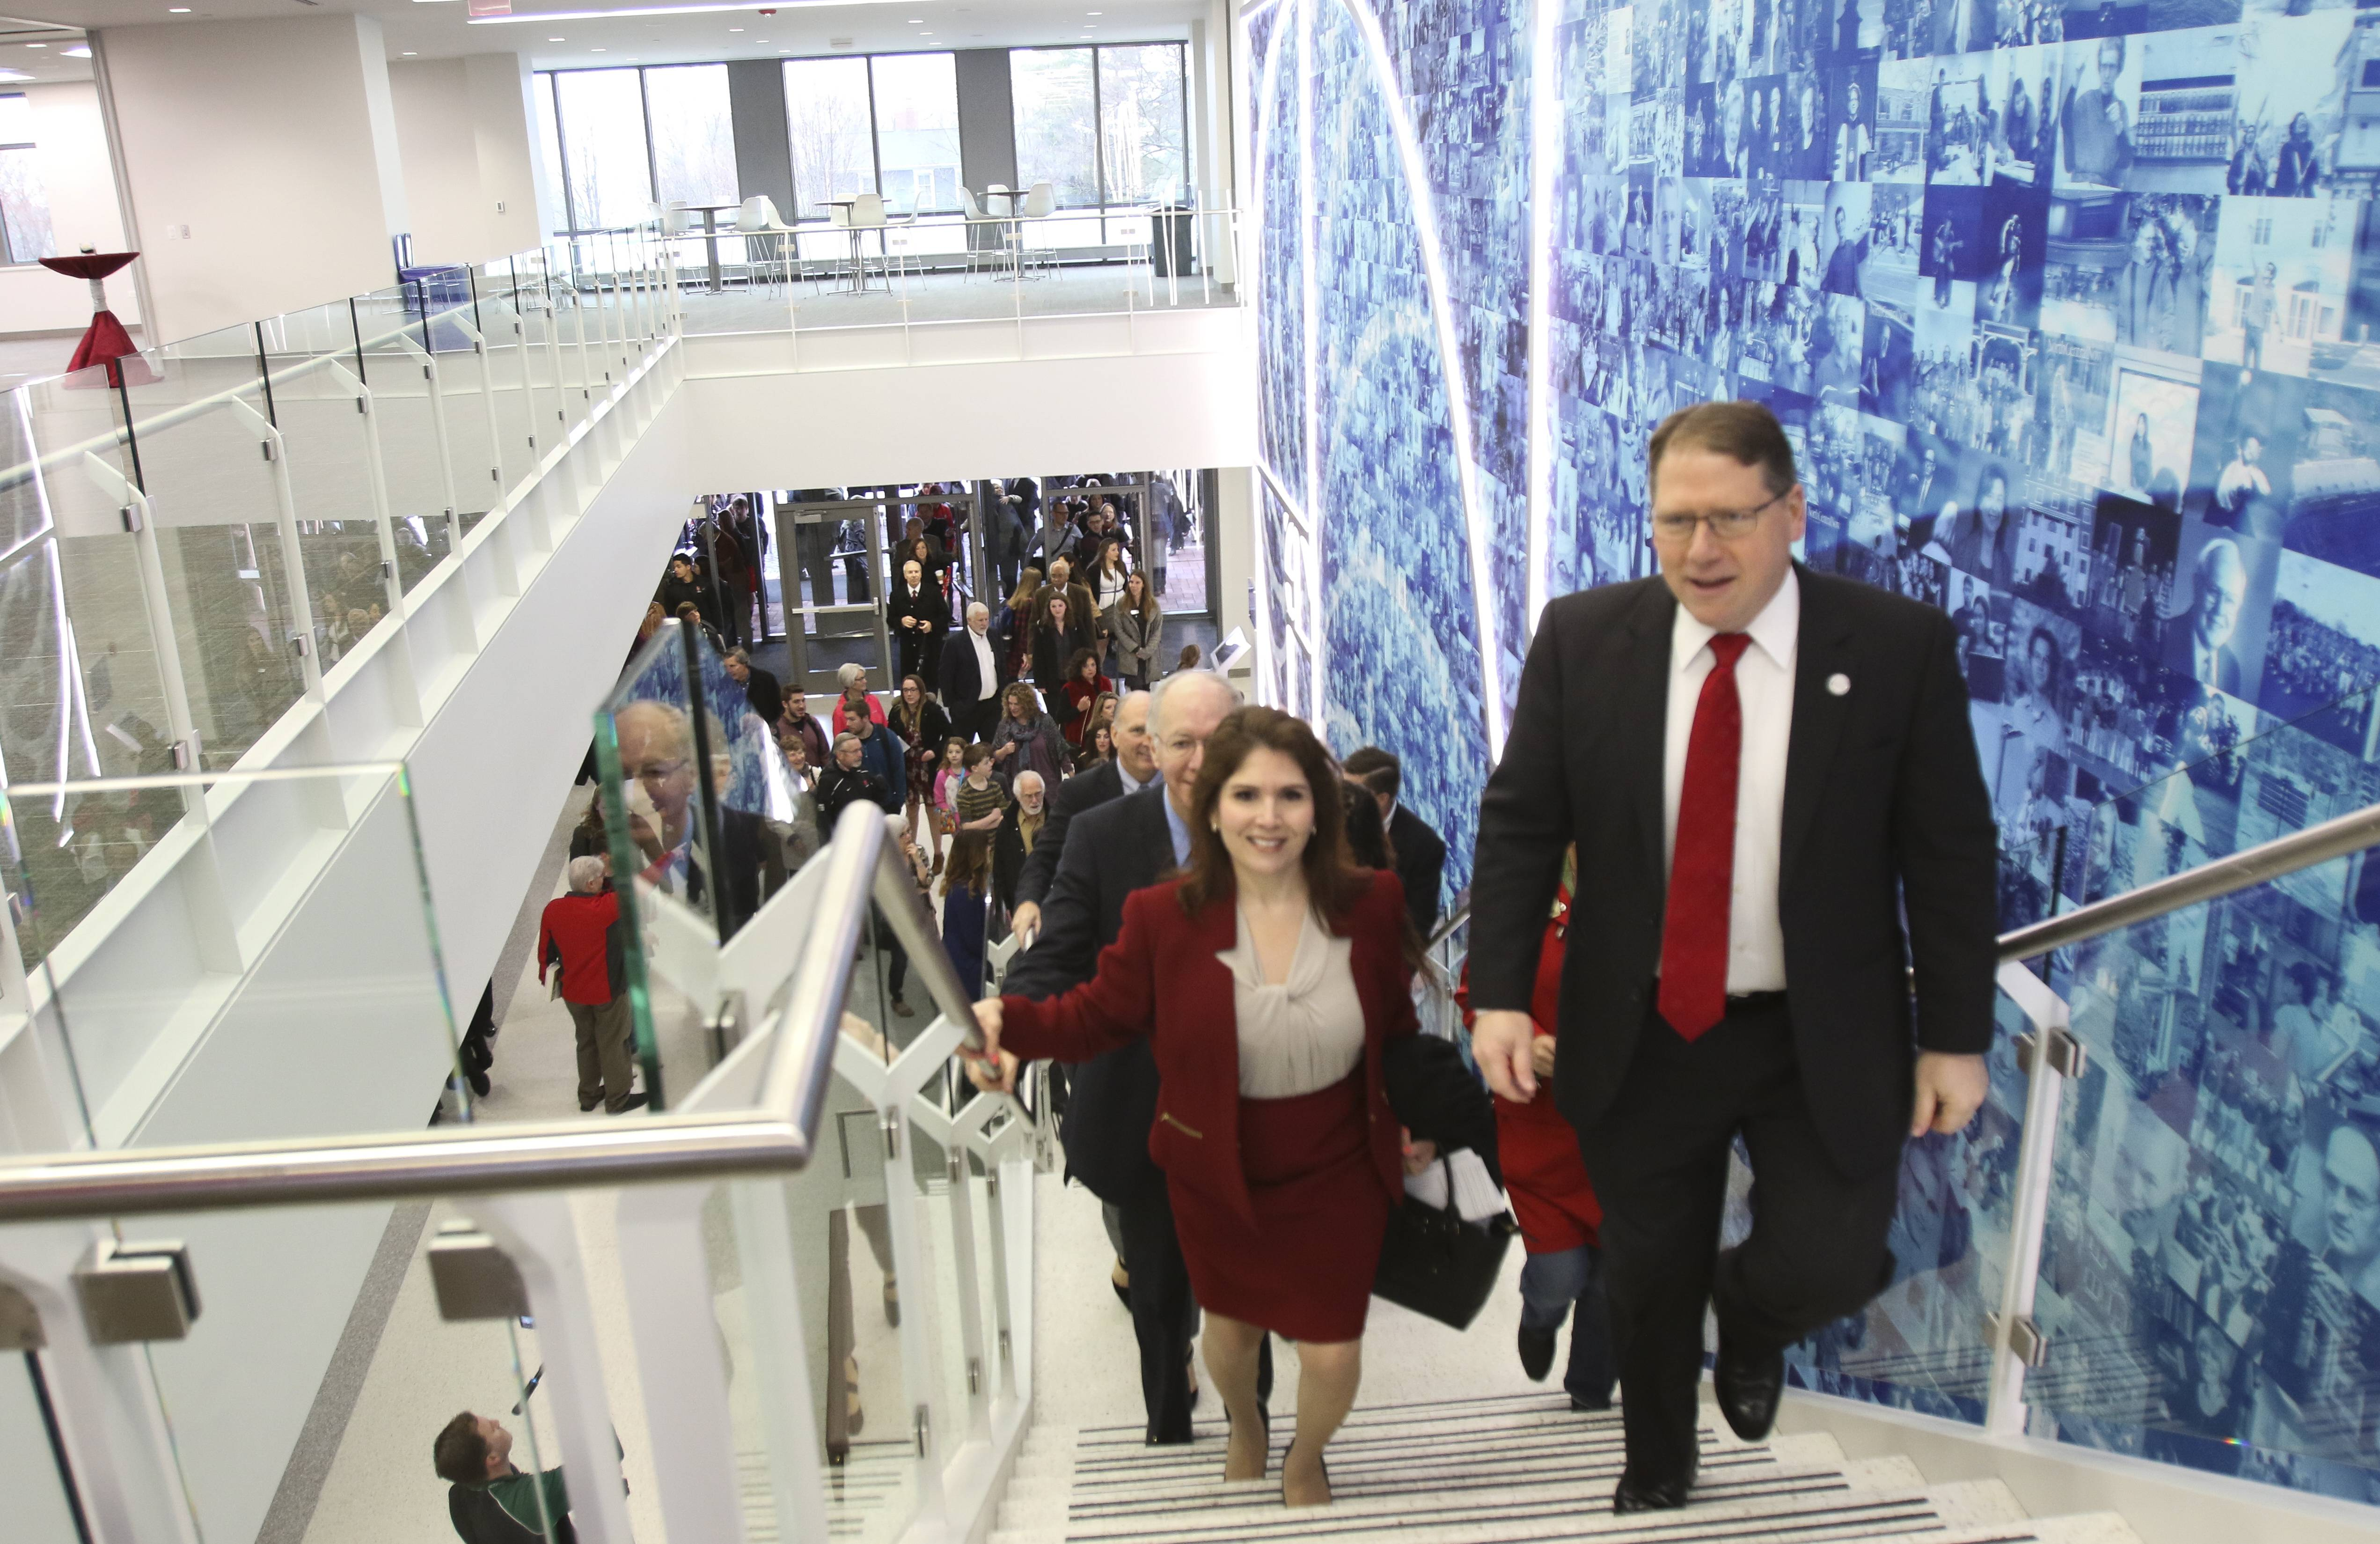 North Central College President Troy Hammond leads visitors, including Lt. Governor Evelyn Saguinetti, left, into the Wentz Science Center when it opened last spring in Naperville.